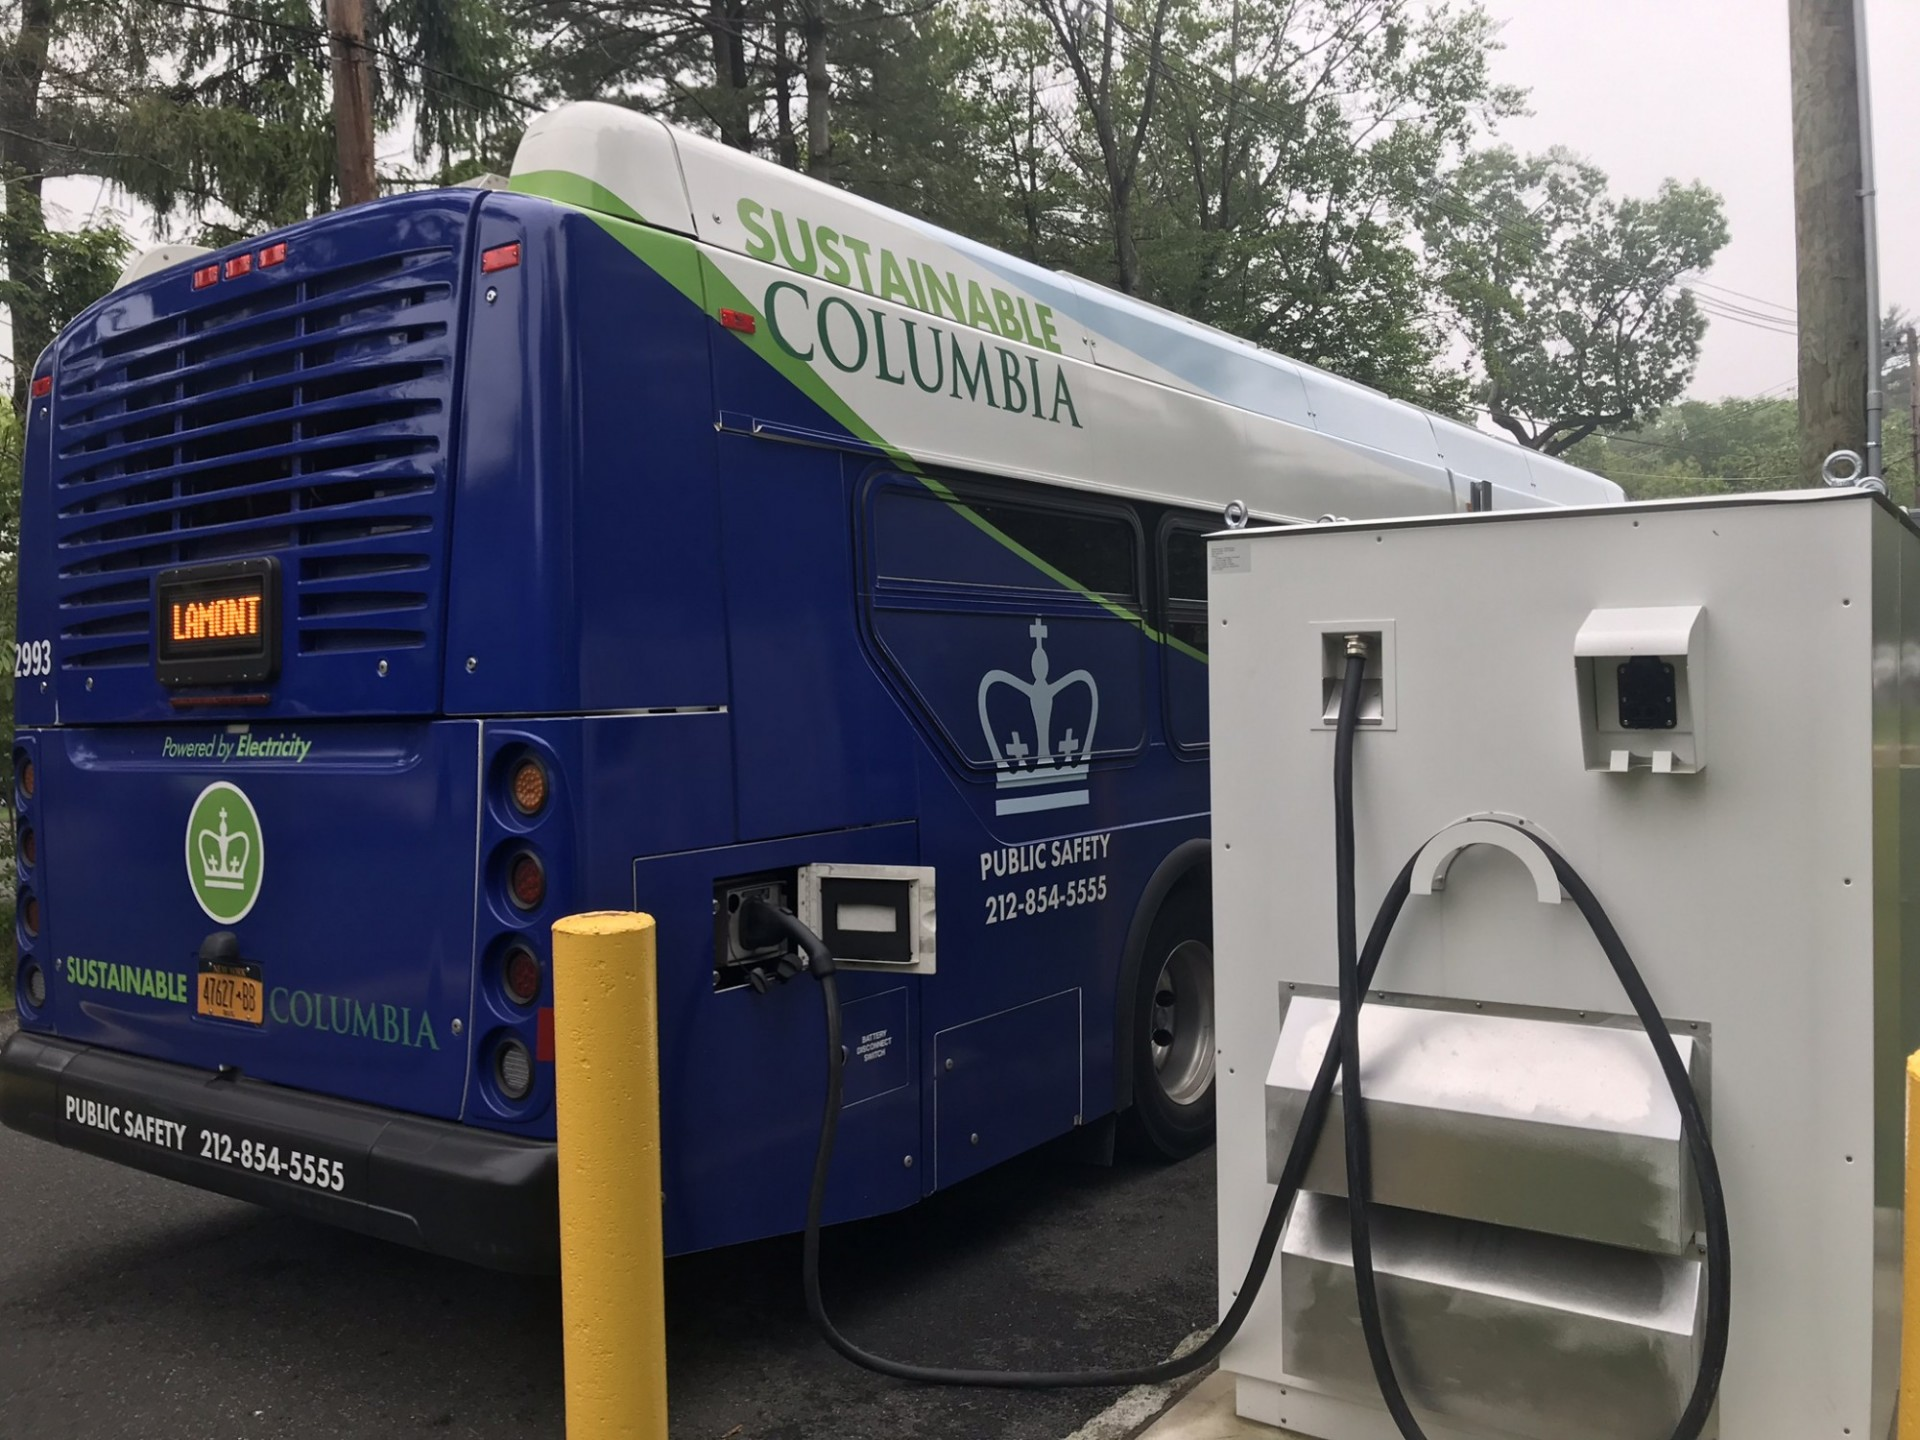 Electric bus charging at Lamont campus